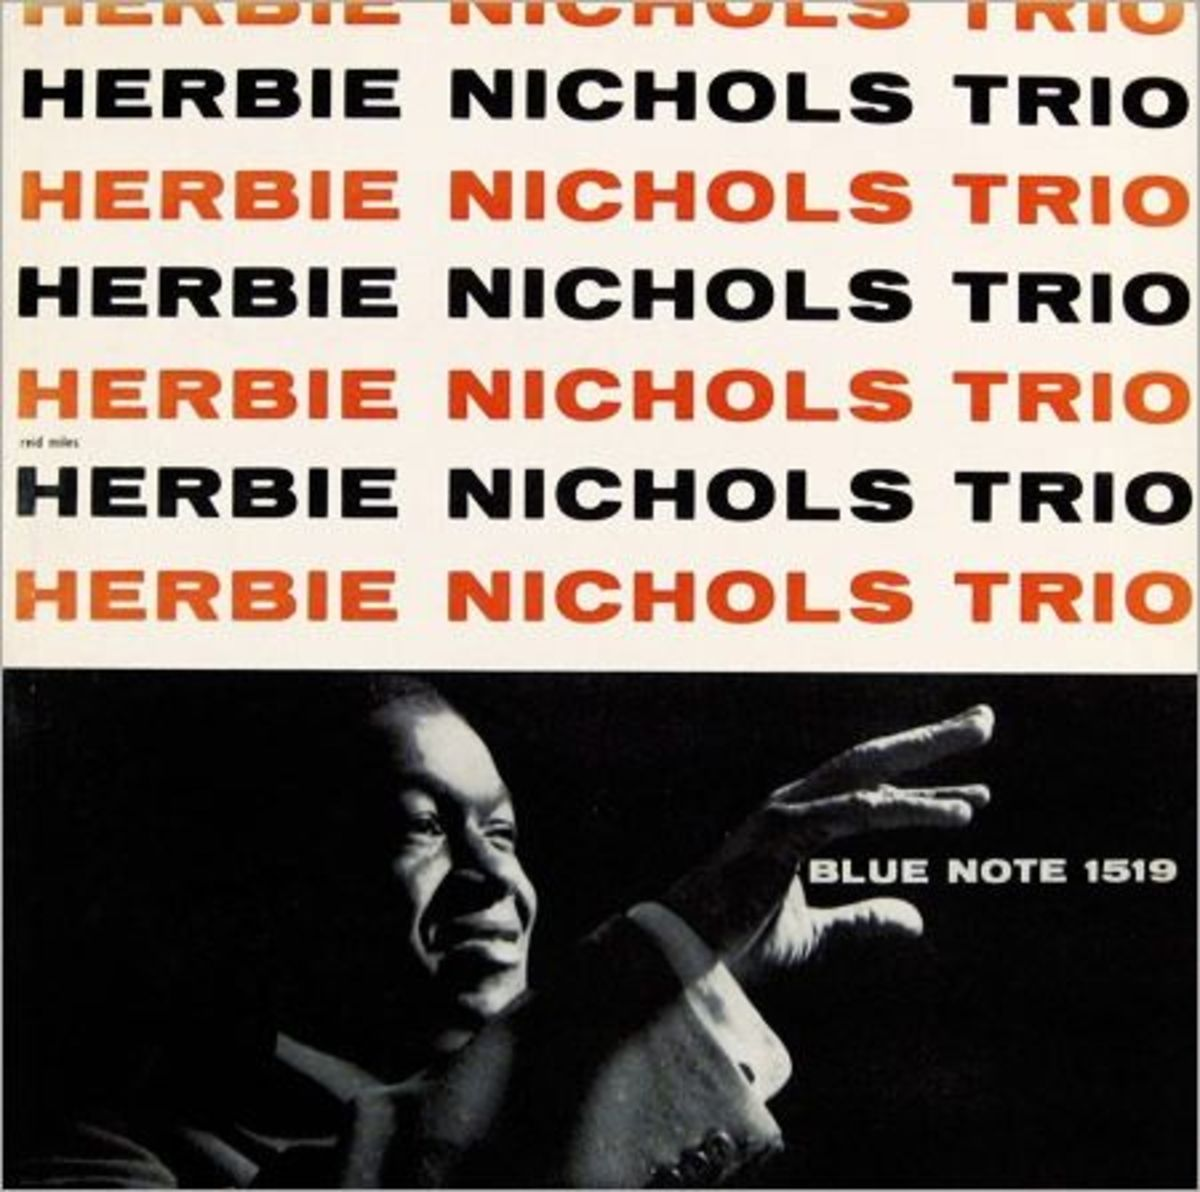 "Herbie Nichols Trio Blue Note Records BLP 1519 12"" LP Vinyl Record (1956) Album Cover Design by Reid Miles, Photo by Francis Wolff"